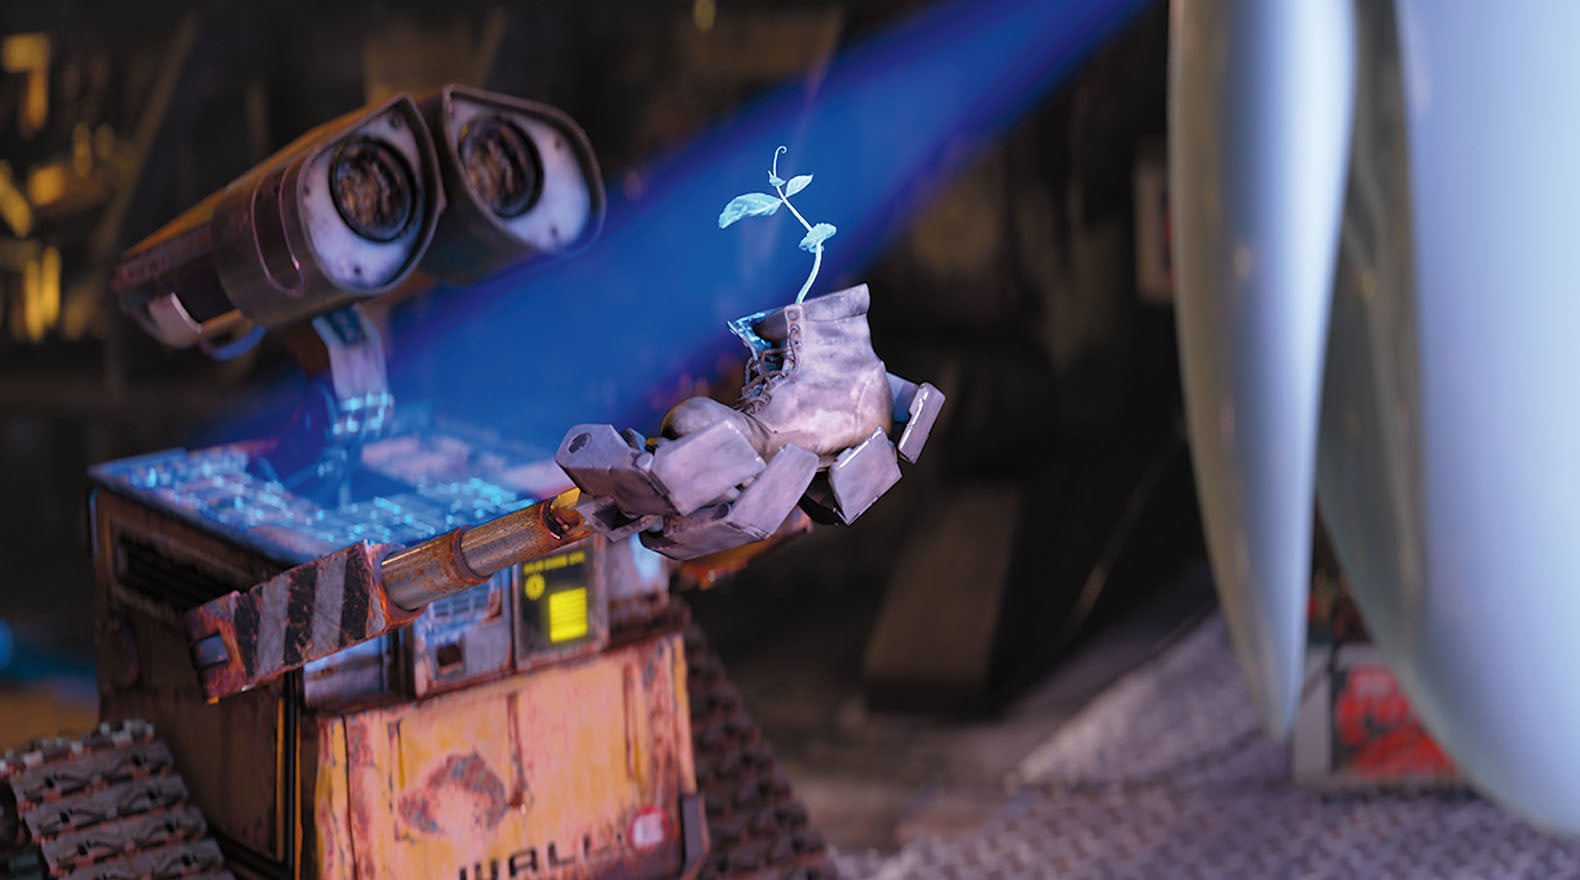 WALL•E stumbled upon something truly unique to give to EVE.